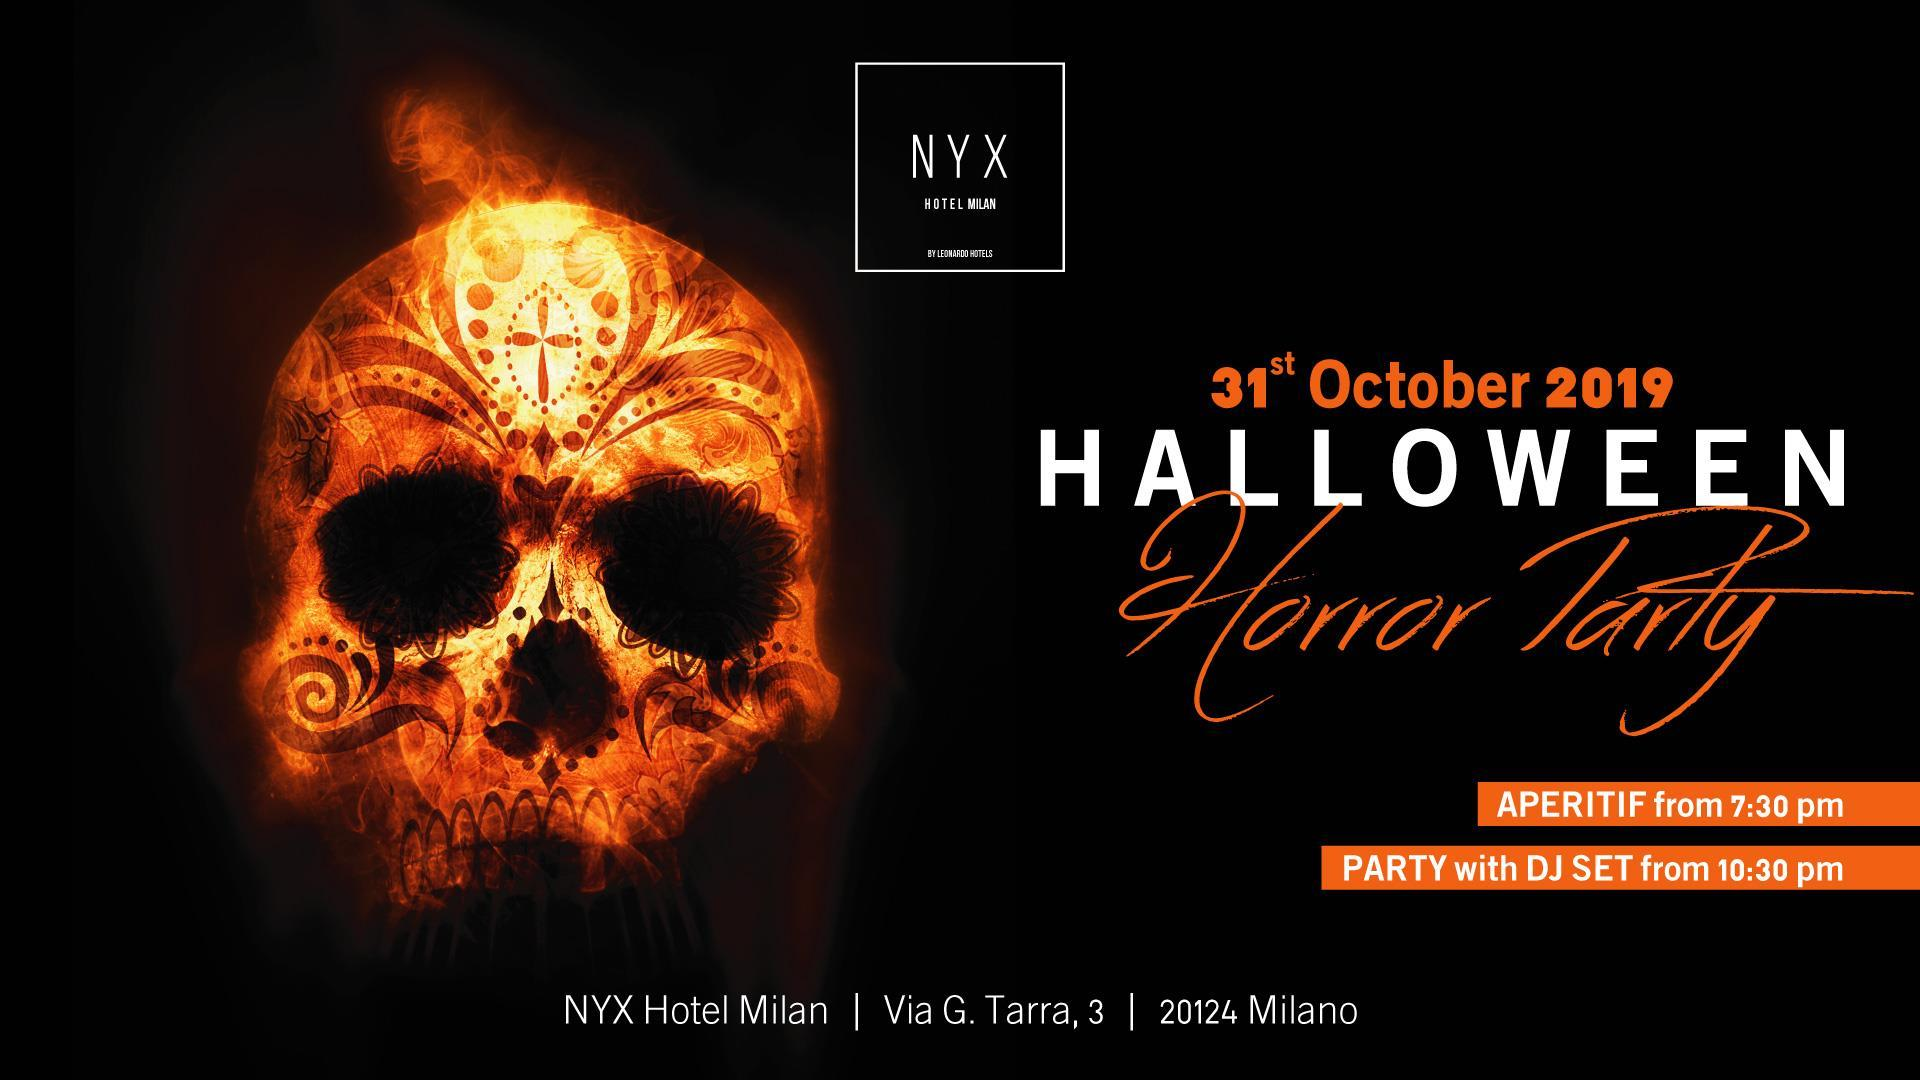 Halloween 2019 Milano – Hotel Nyx Horror Party